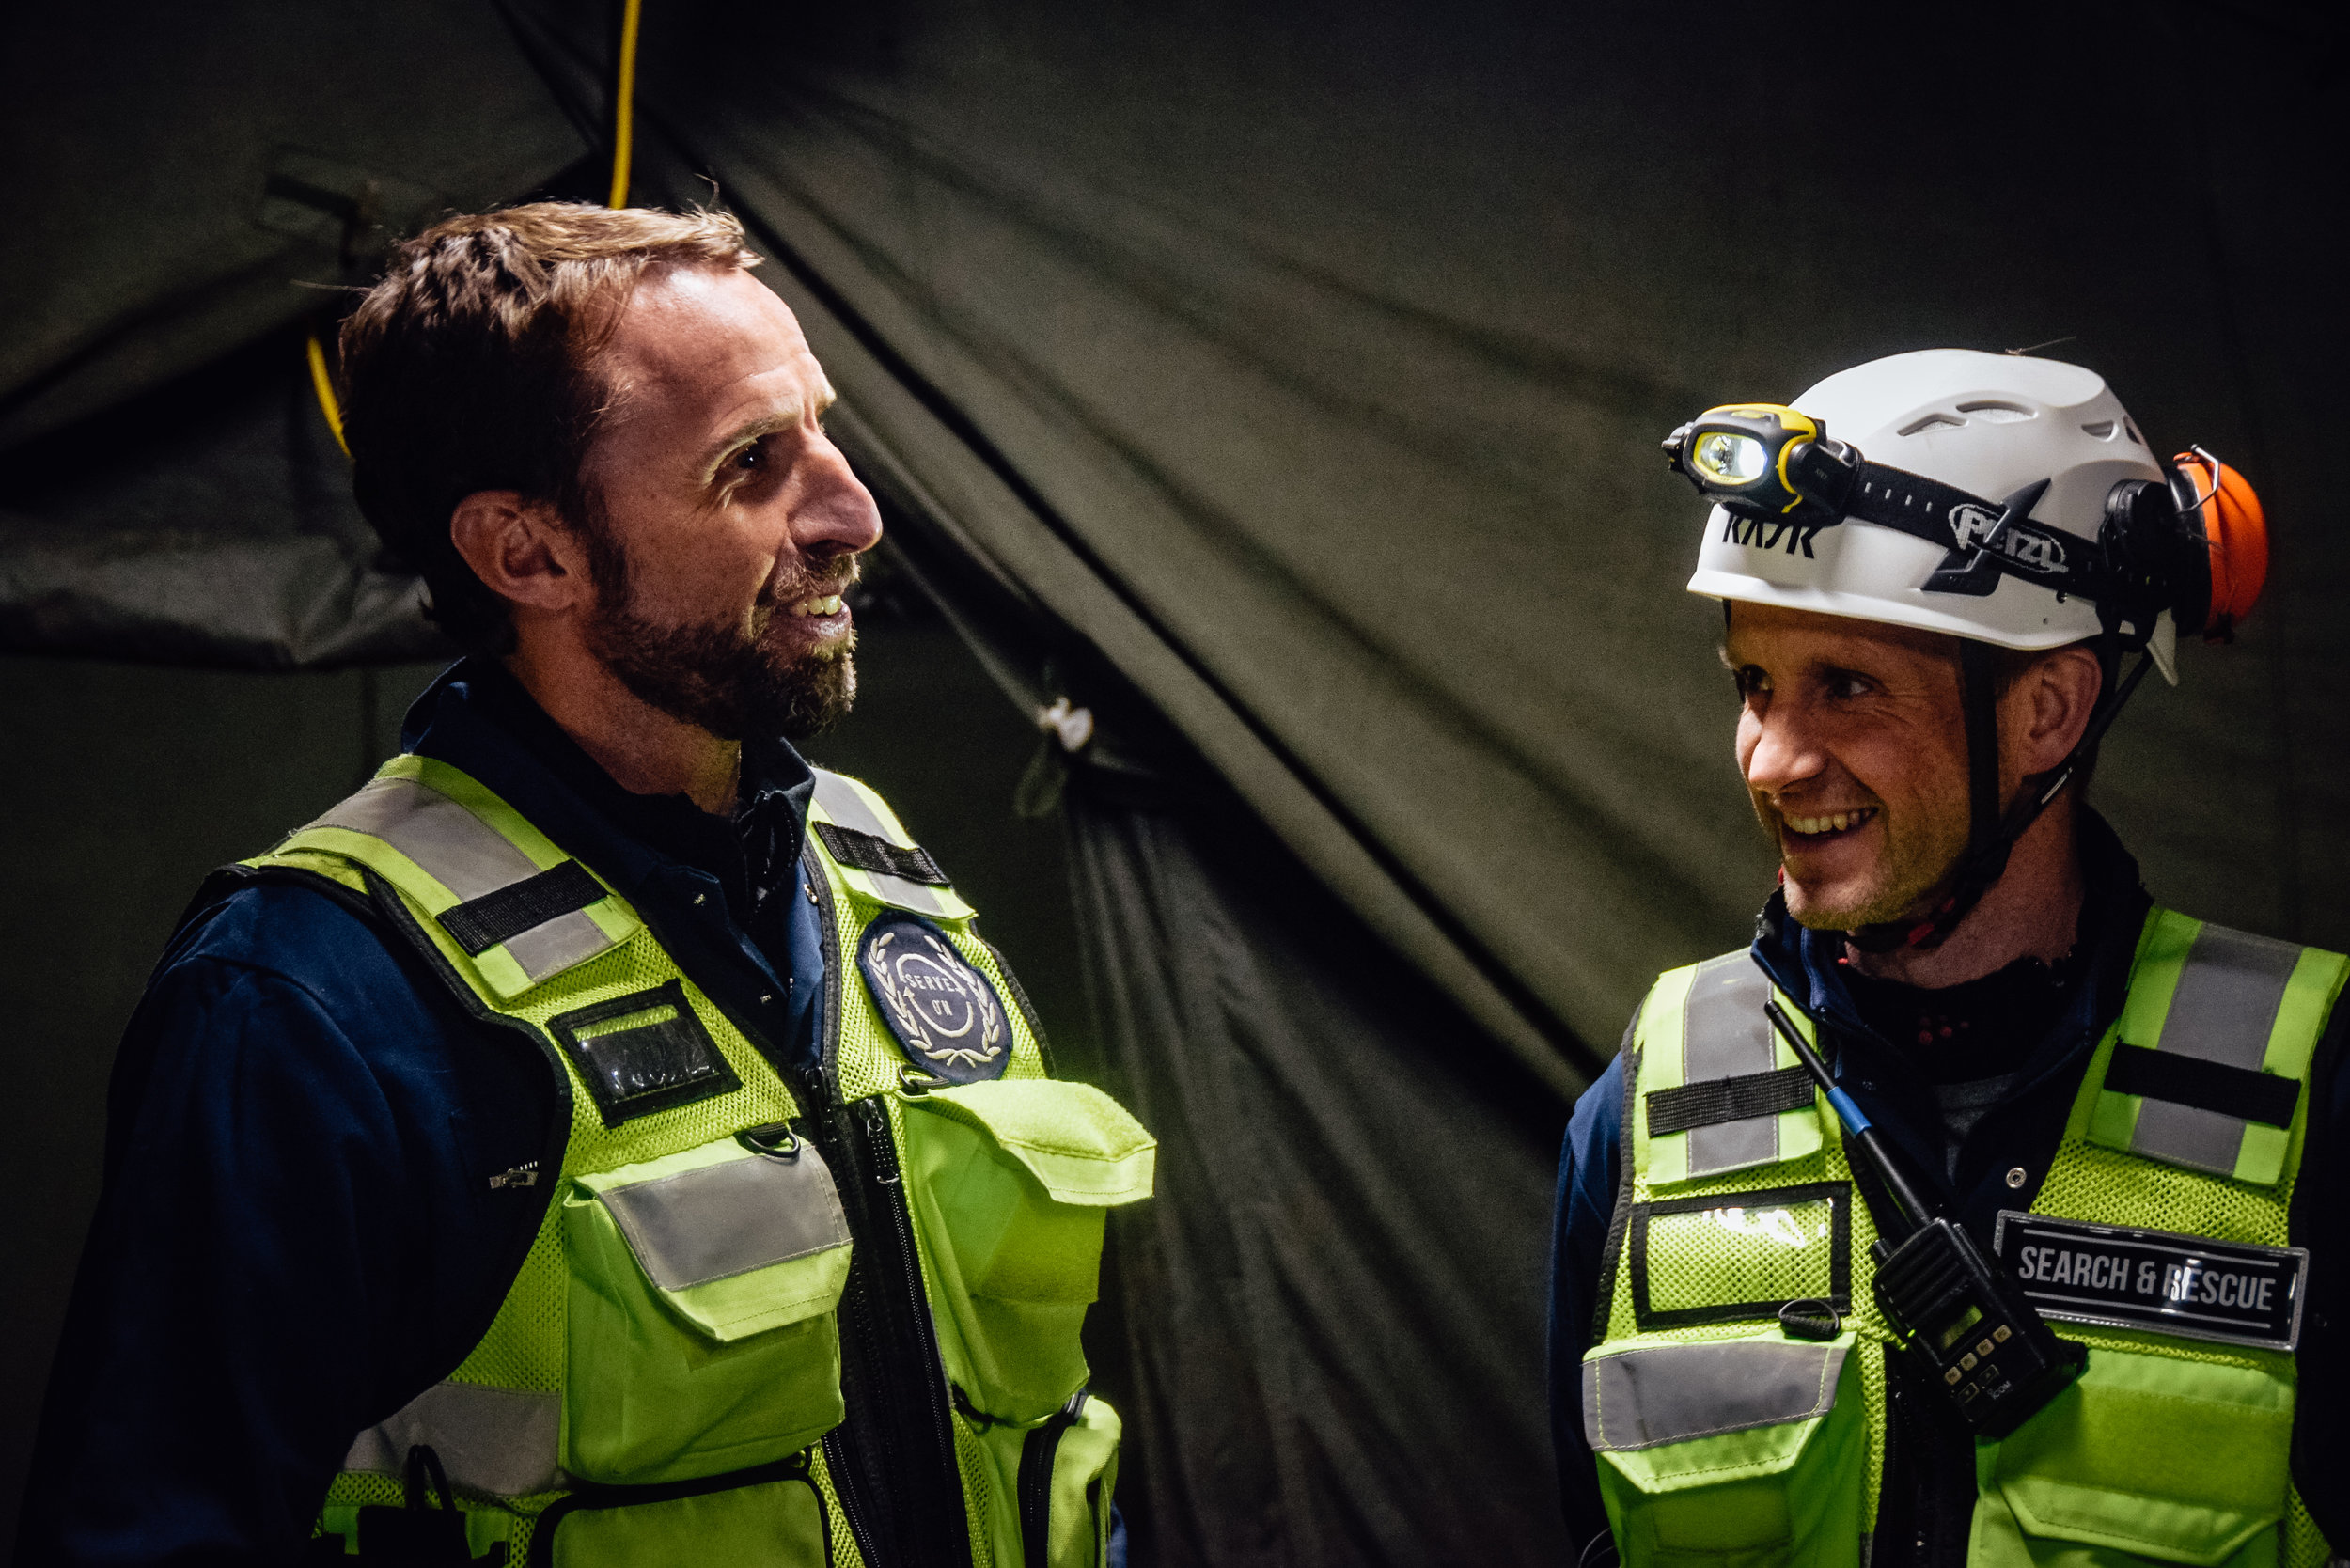 England Football head coach Gareth Southgate and England Rugby Sevens head coach Simon Amor during a disaster scenario experience with Serve On humanitarian response charity. Photo by Matt Evans